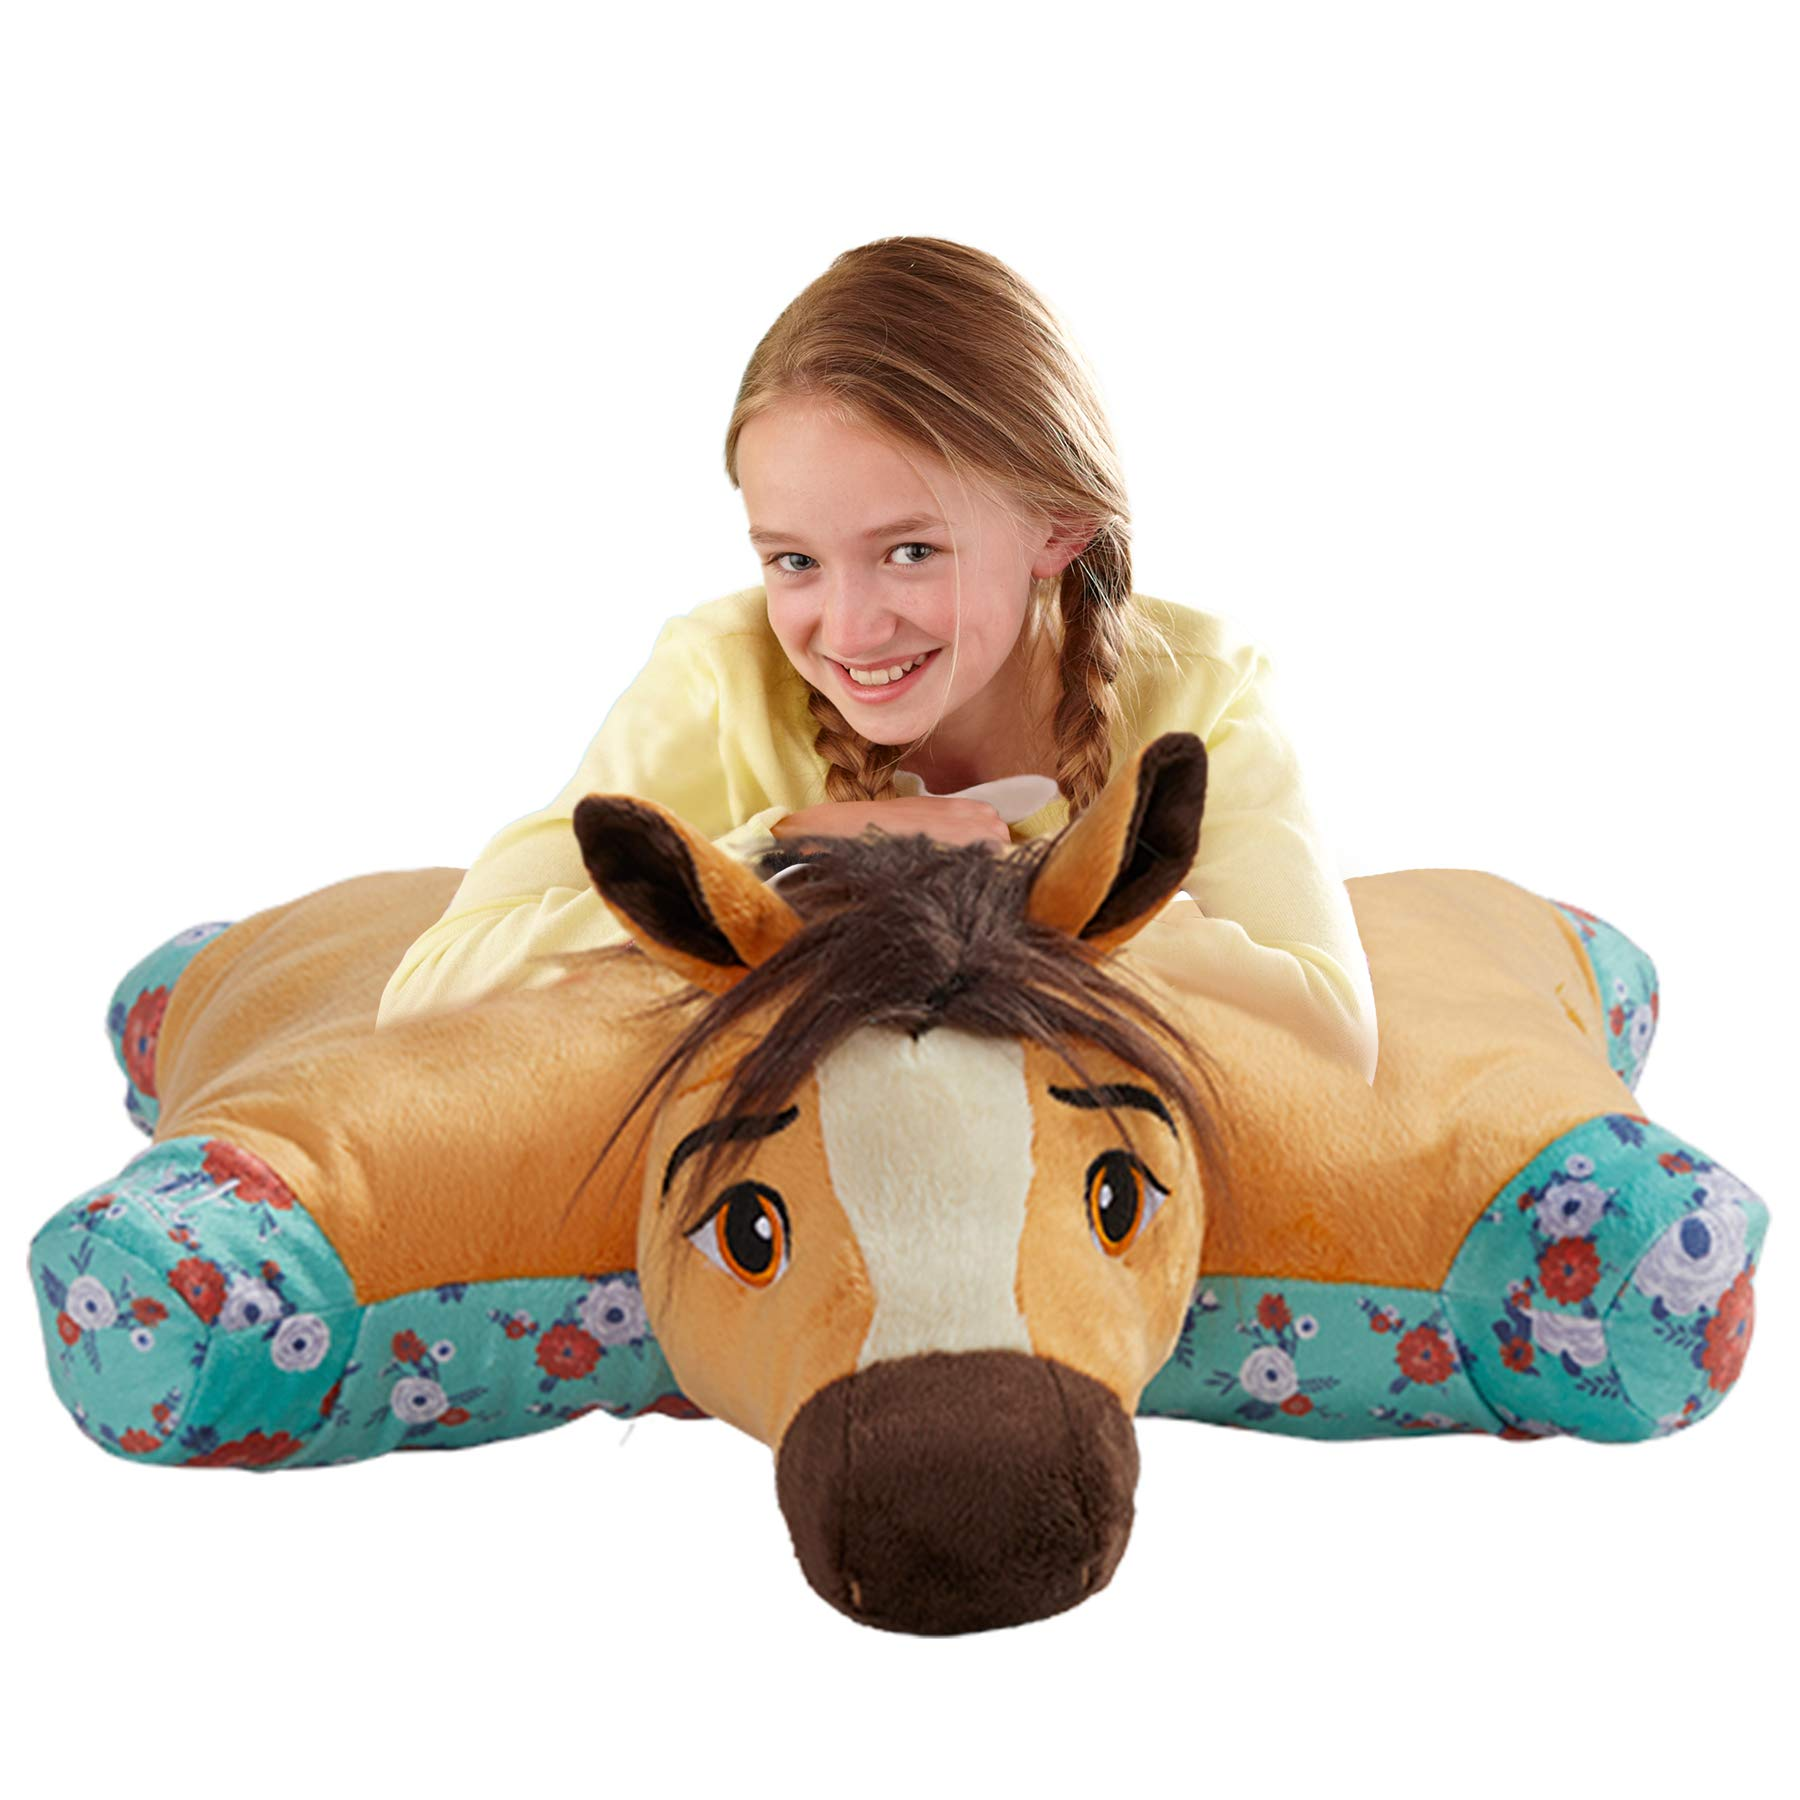 Pillow Pets Spirit Riding Free Horse - DreamWorks Extra Big Stuffed Animal Plush Toy by Pillow Pets